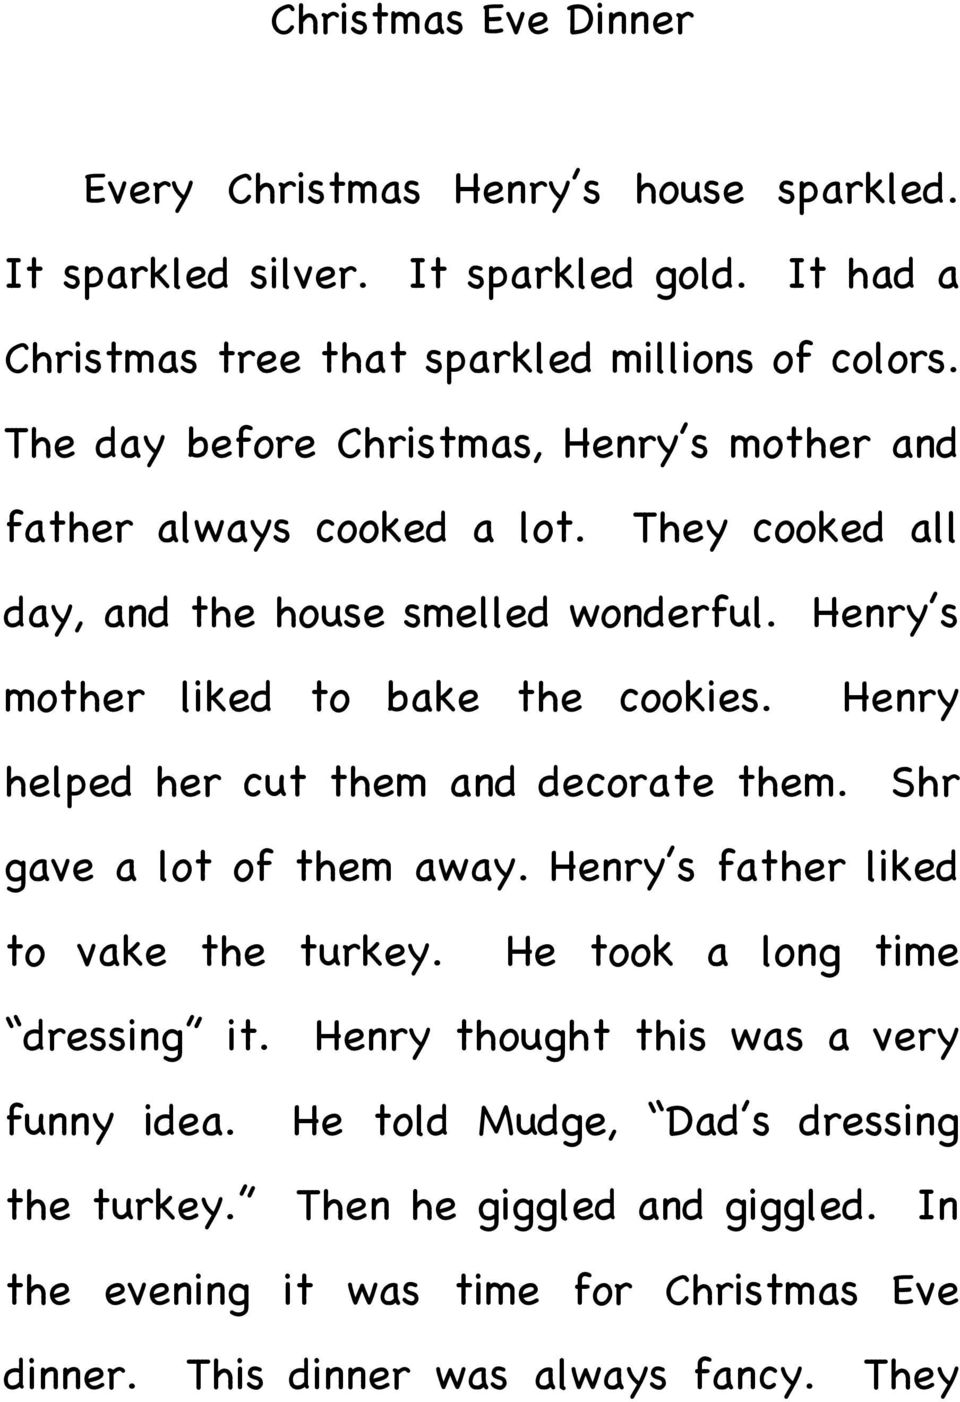 Henry helped her cut them and decorate them. Shr gave a lot of them away. Henry s father liked to vake the turkey. He took a long time dressing it.